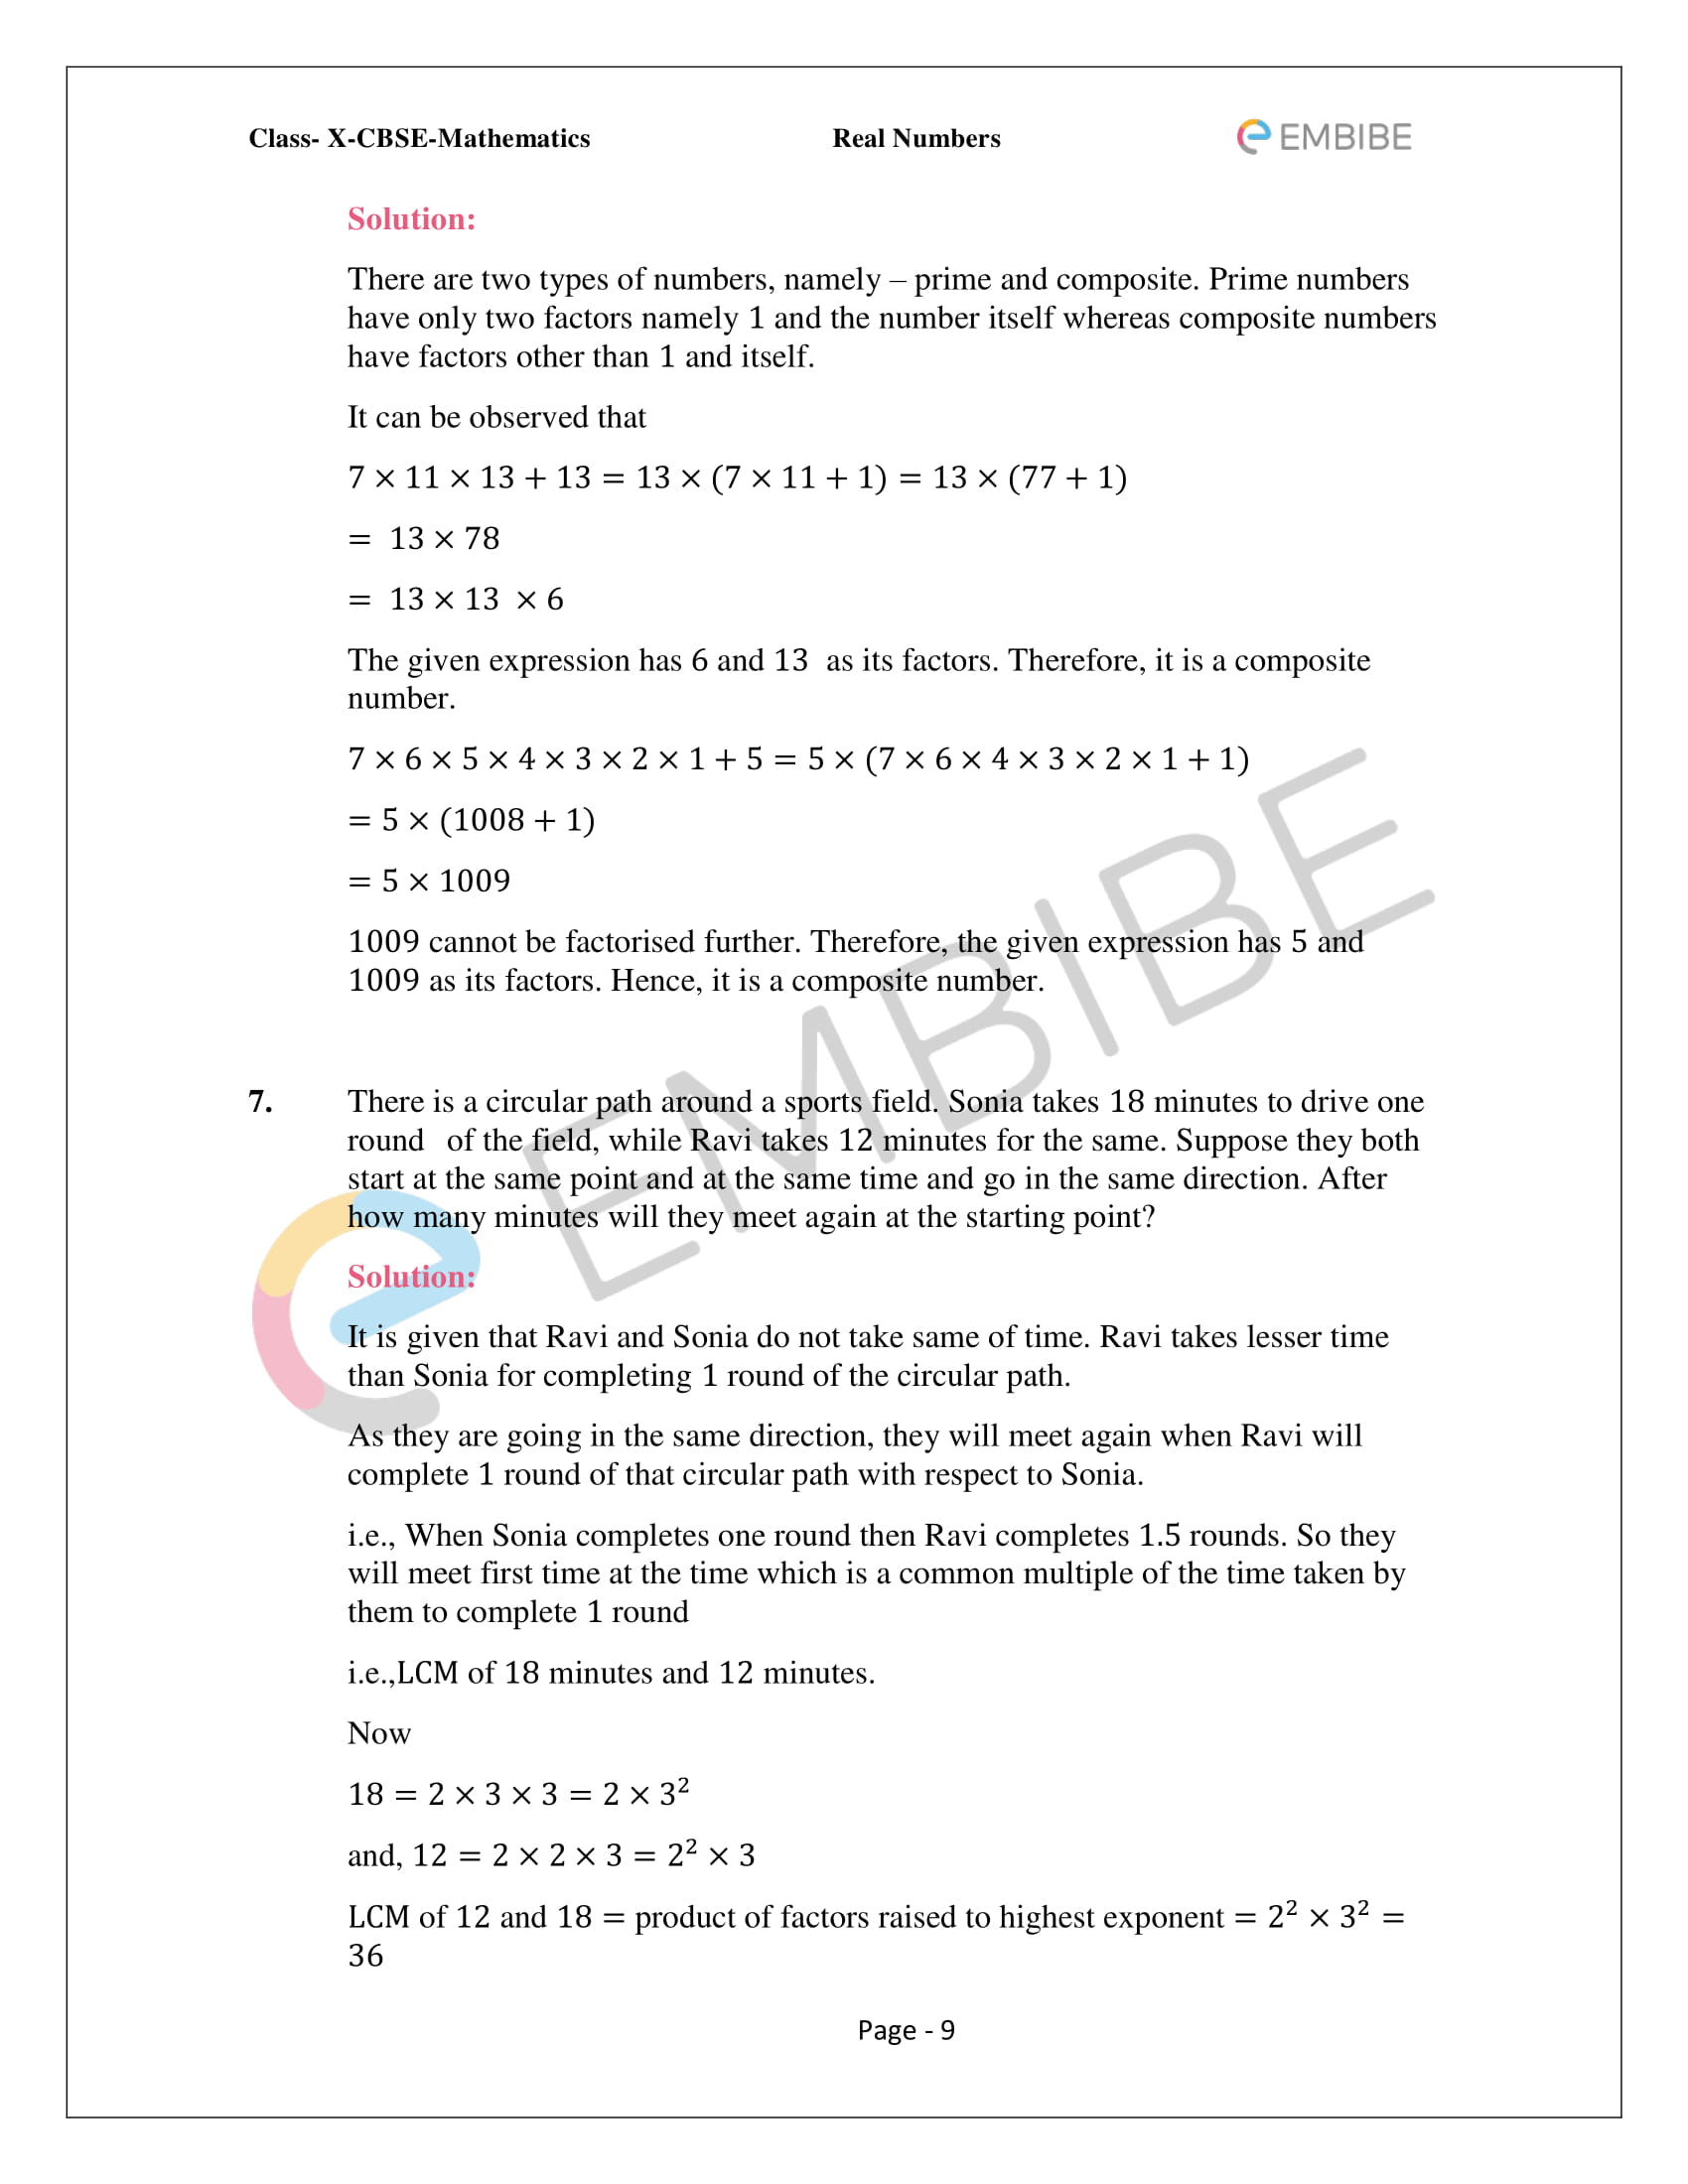 CBSE NCERT Solutions For Class 10 Maths Chapter 1 - Real Numbers - 9